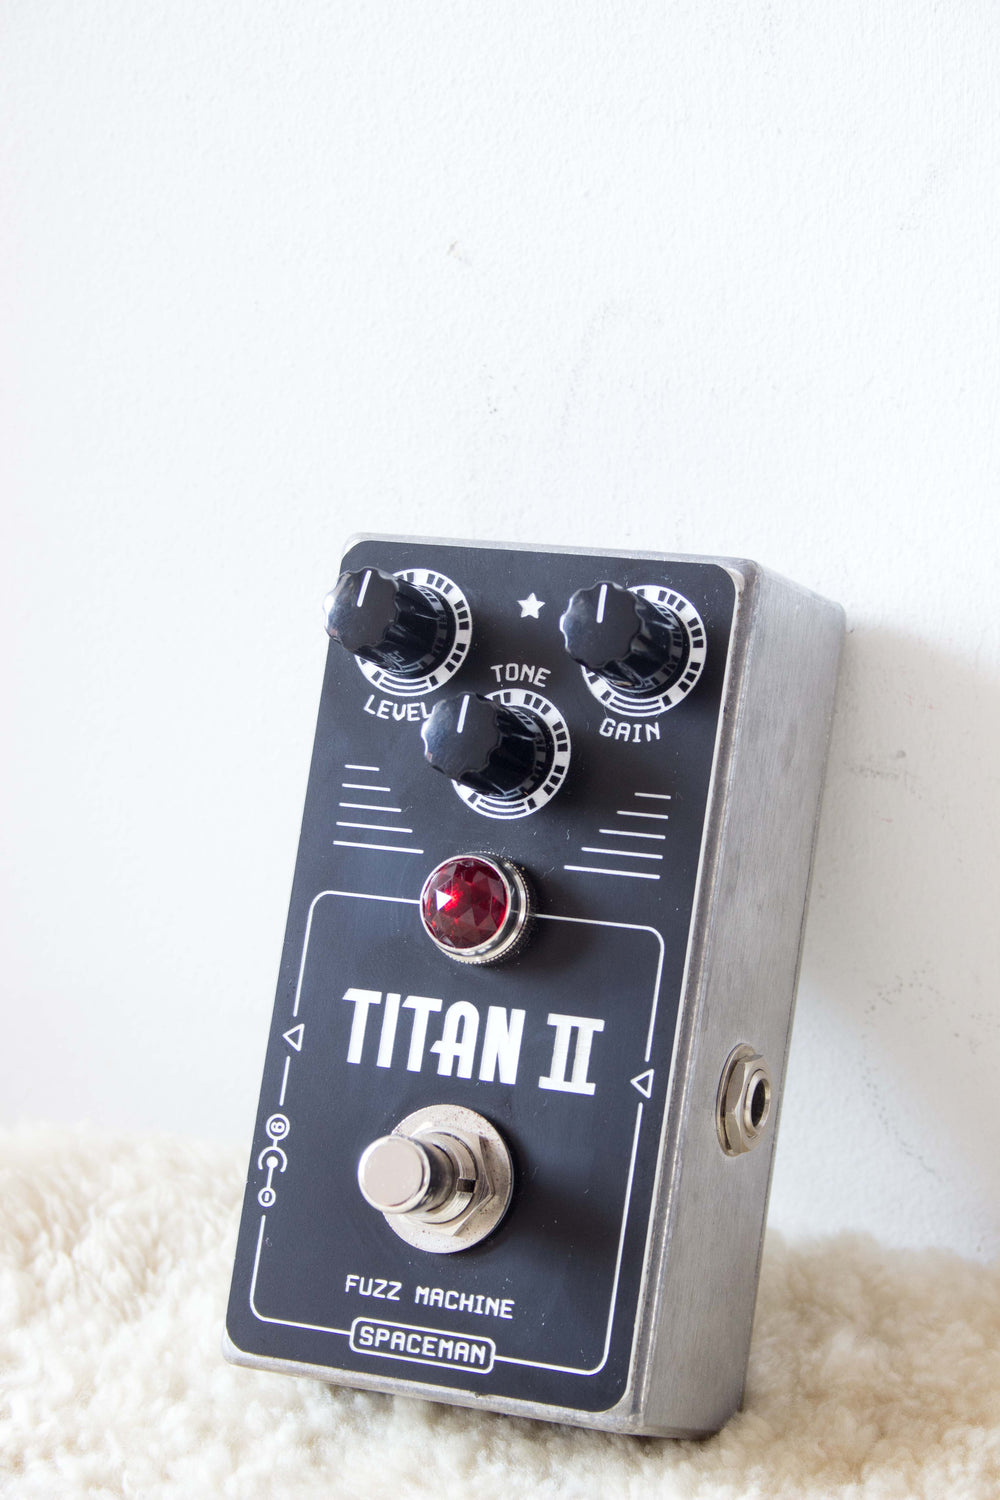 Spaceman Titan II Fuzz Machine Pedal